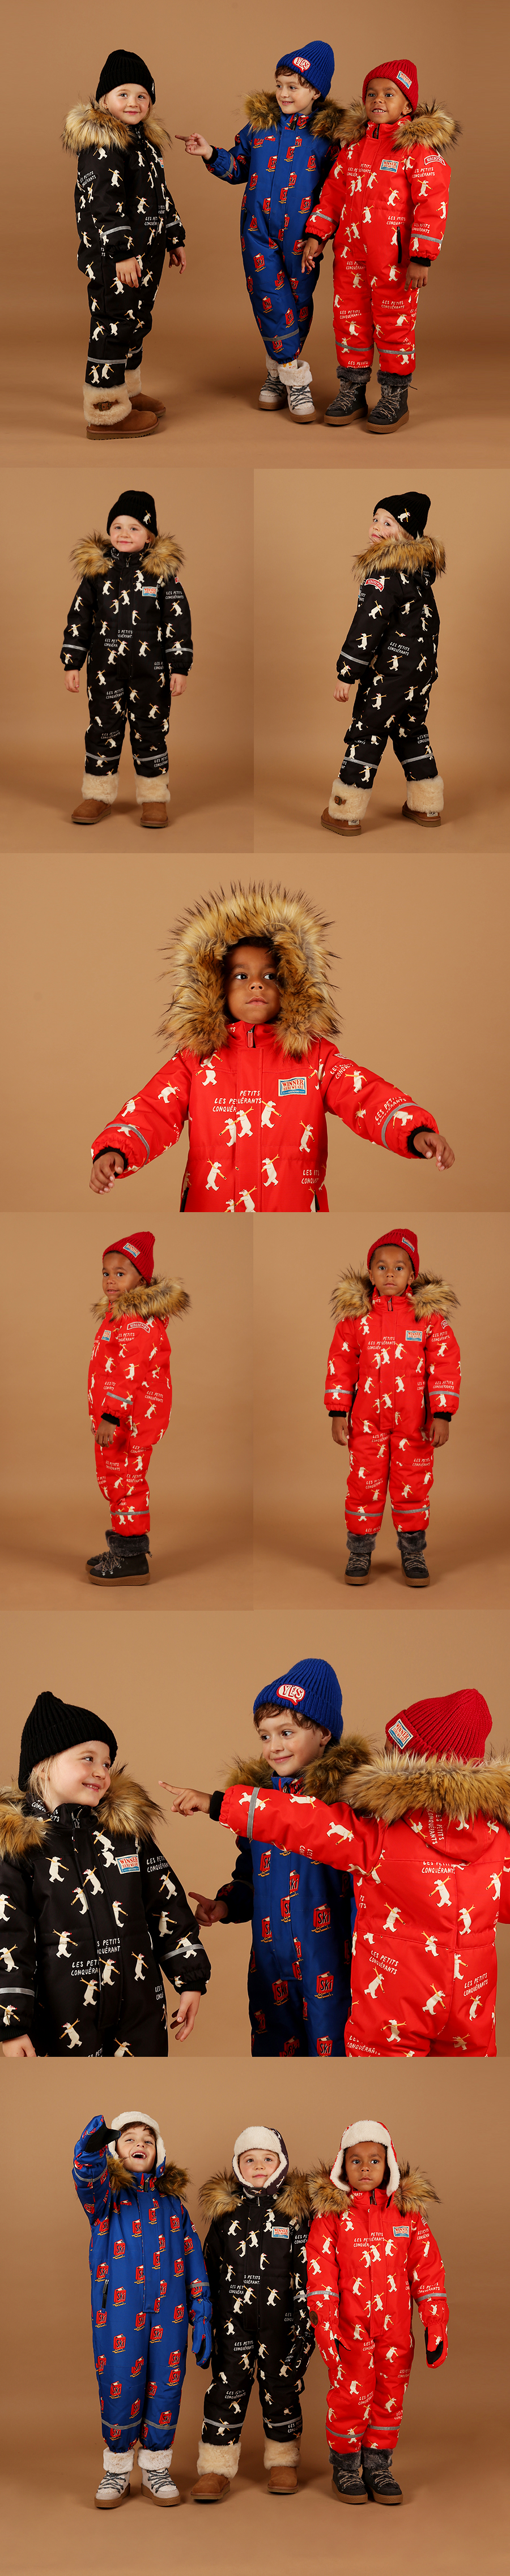 Multi polar bear ski suit 상세 이미지